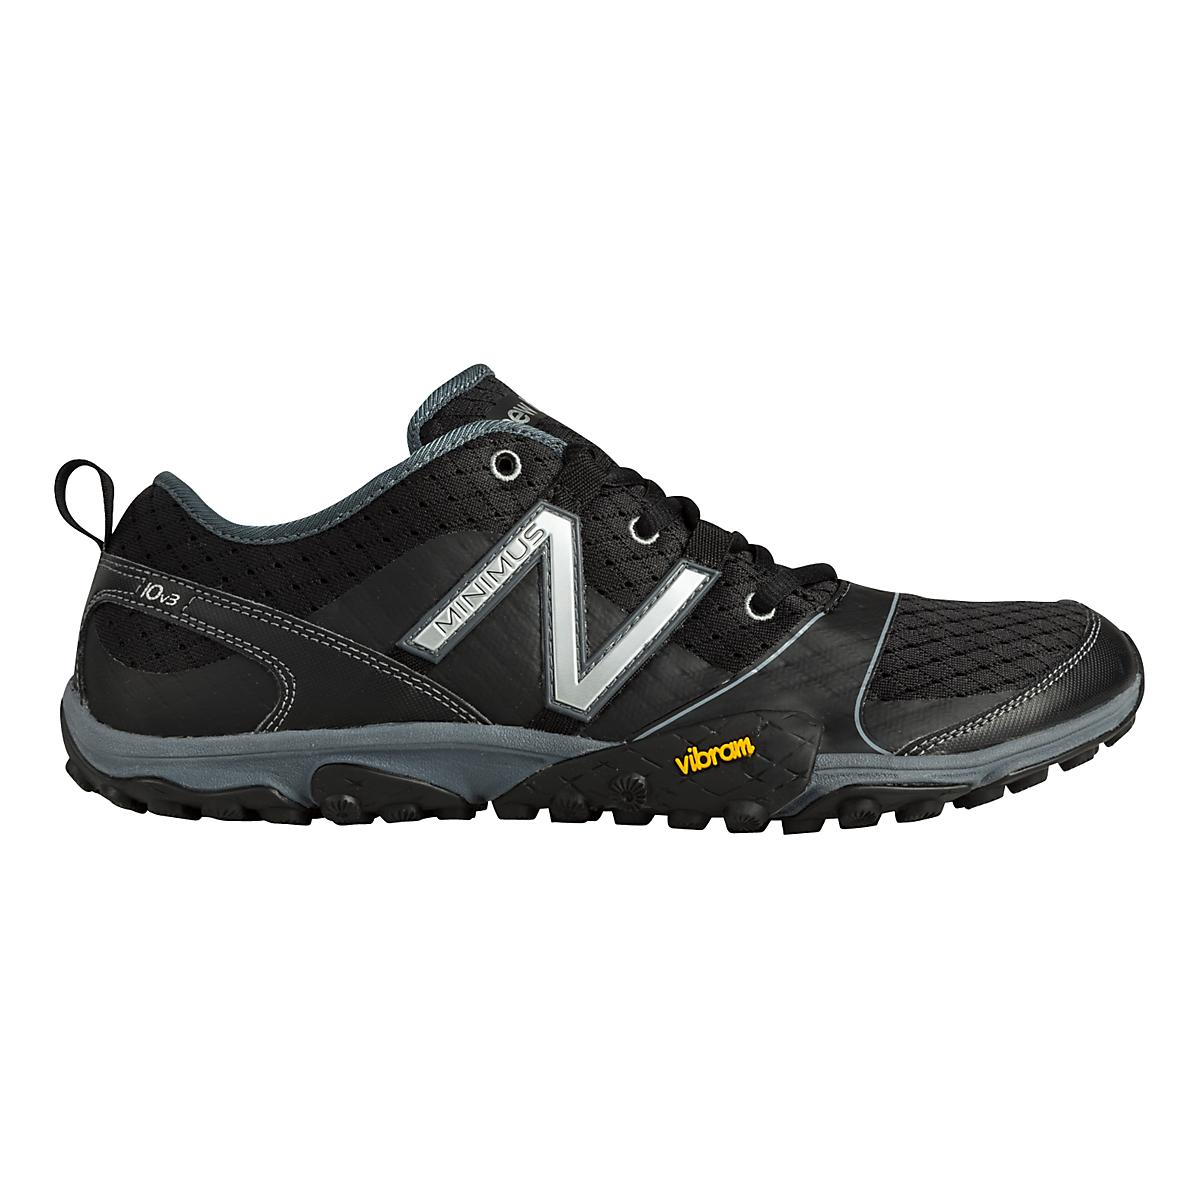 bd2feeeb8 Mens New Balance Minimus 10v3 Trail Running Shoe at Road Runner Sports